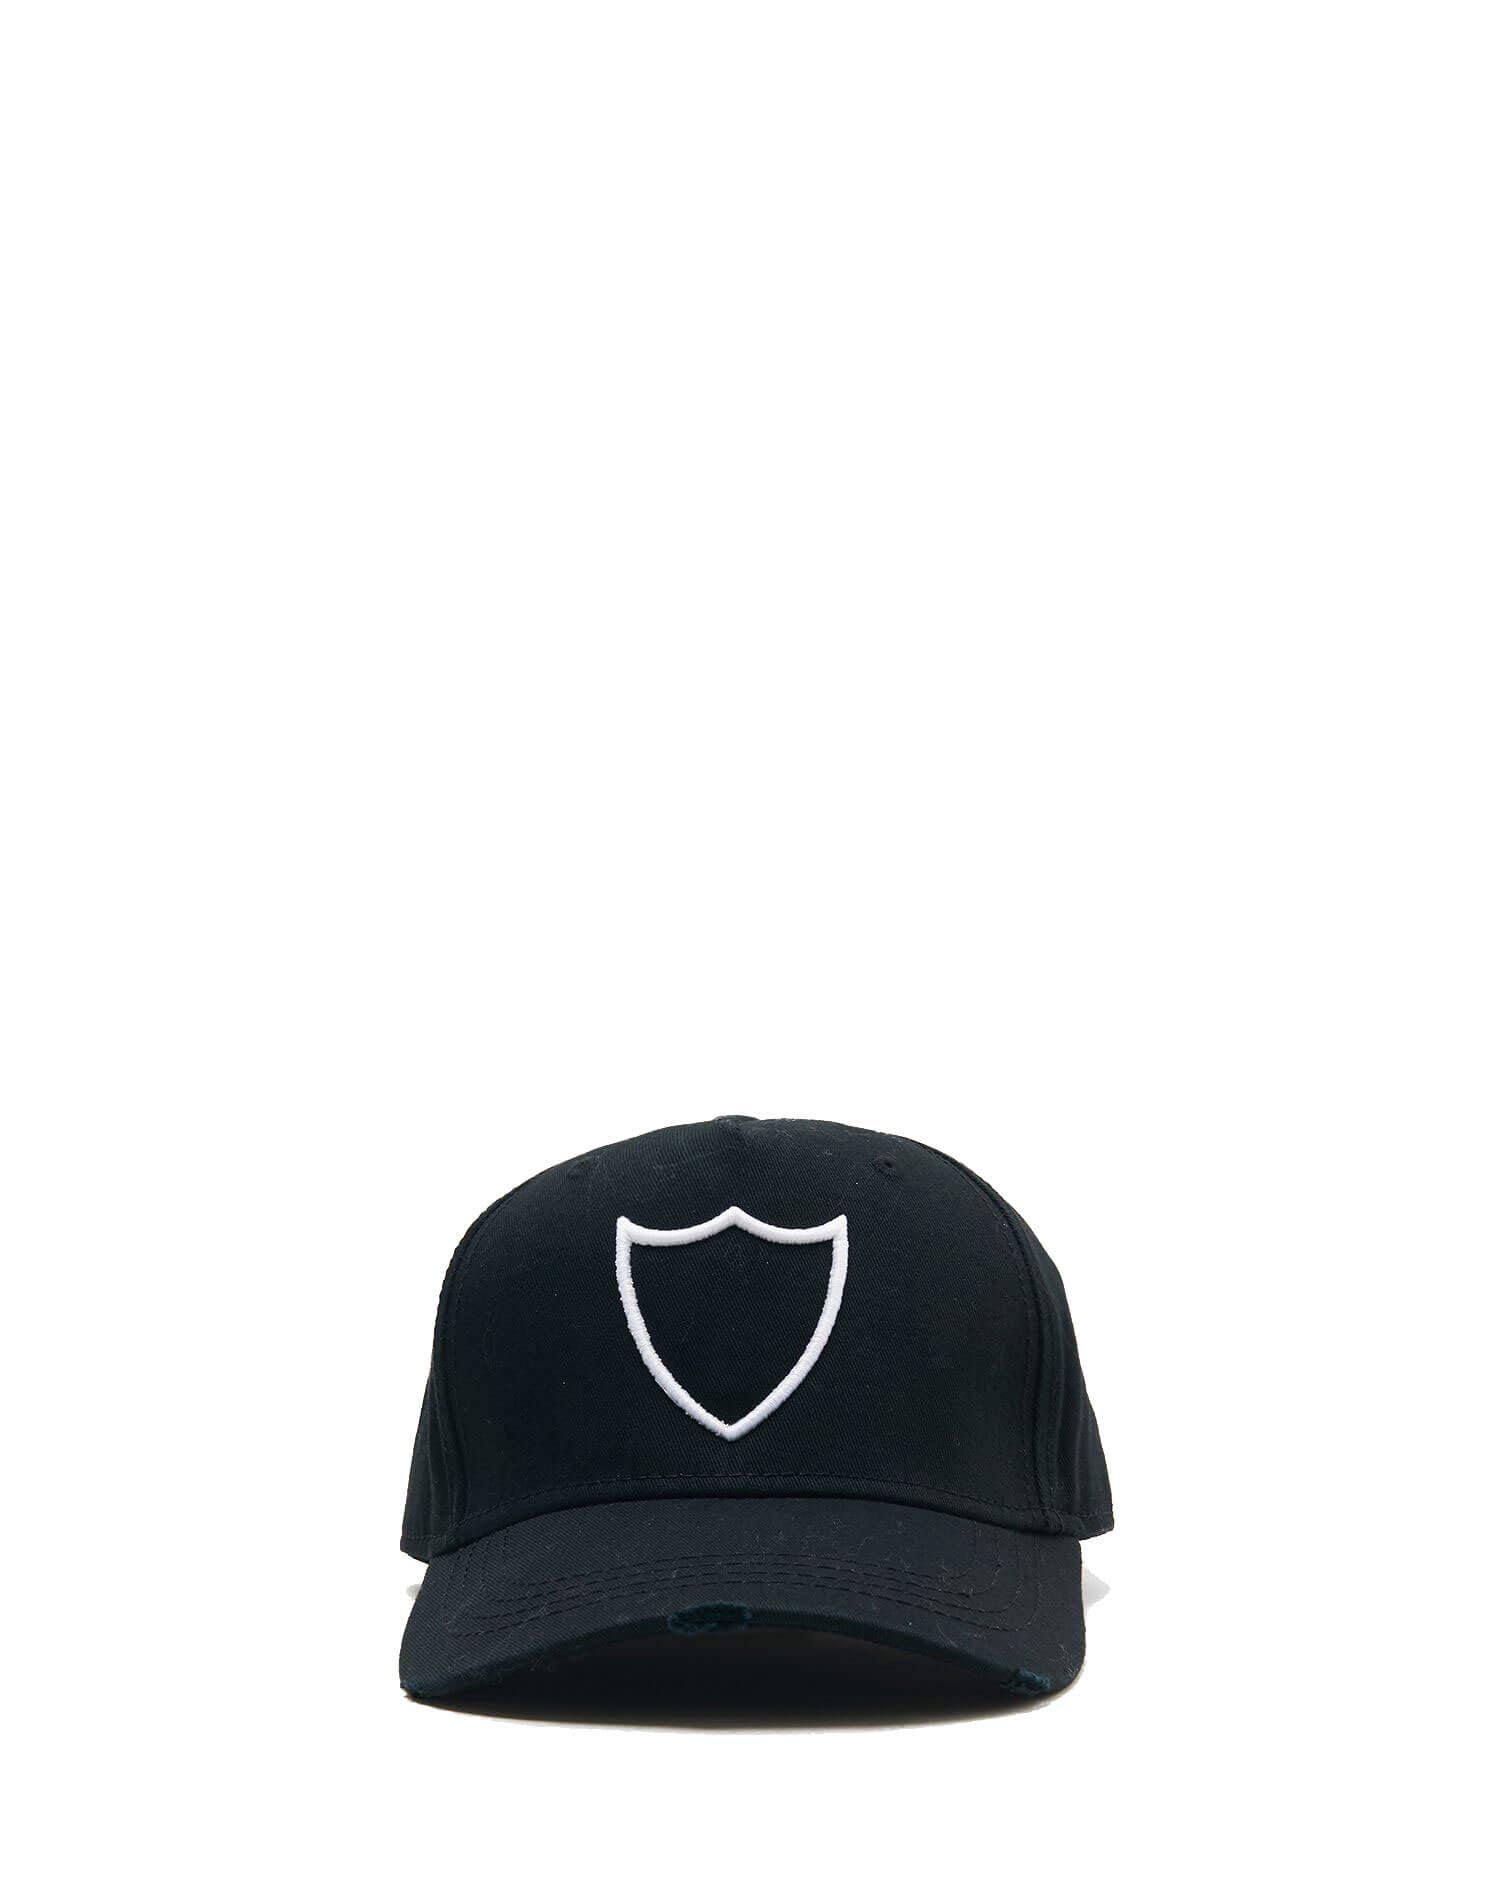 HTC BLACK LOGO BASEBALL CAP